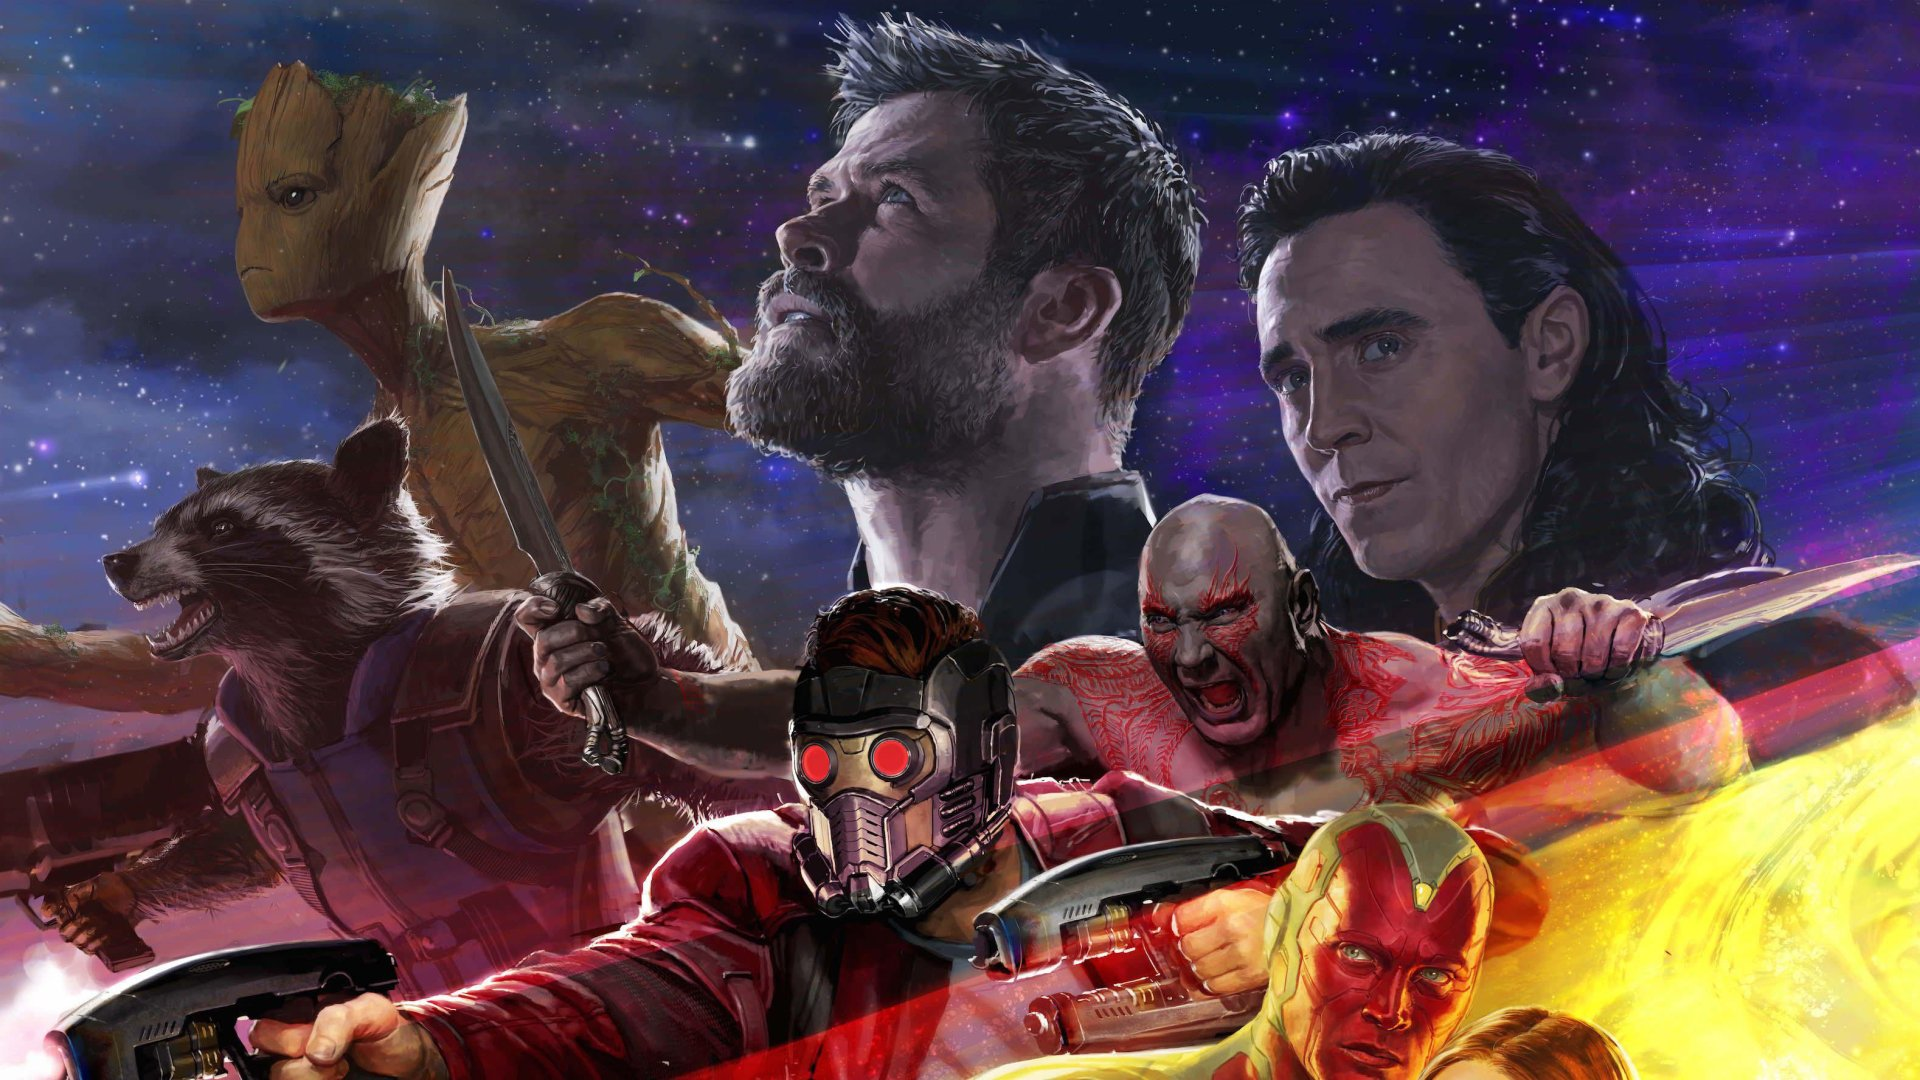 Movie - Avengers: Infinity War  Loki Tom Hiddleston Thor Chris Hemsworth Groot Vin Diesel Rocket Raccoon Bradley Cooper Star Lord Peter Quill Chris Pratt Drax The Destroyer Dave Bautista Vision (Marvel Comics) Paul Bettany Wallpaper